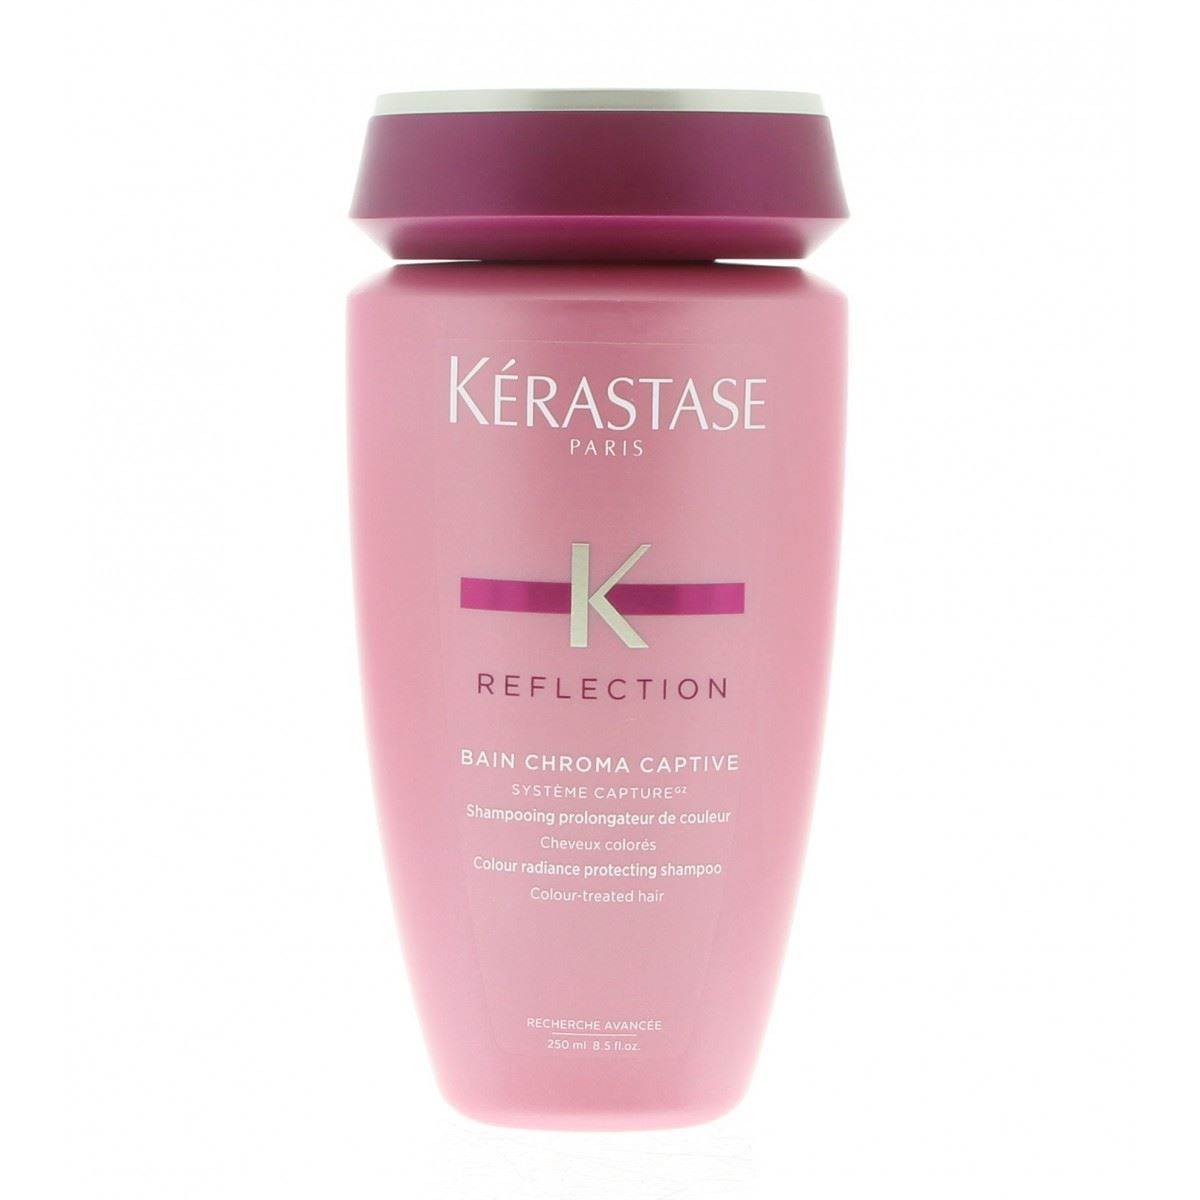 Kerastase reflection bain chroma captive shampoo 250 ml for Kerastase reflection bain miroir 2 shampoo